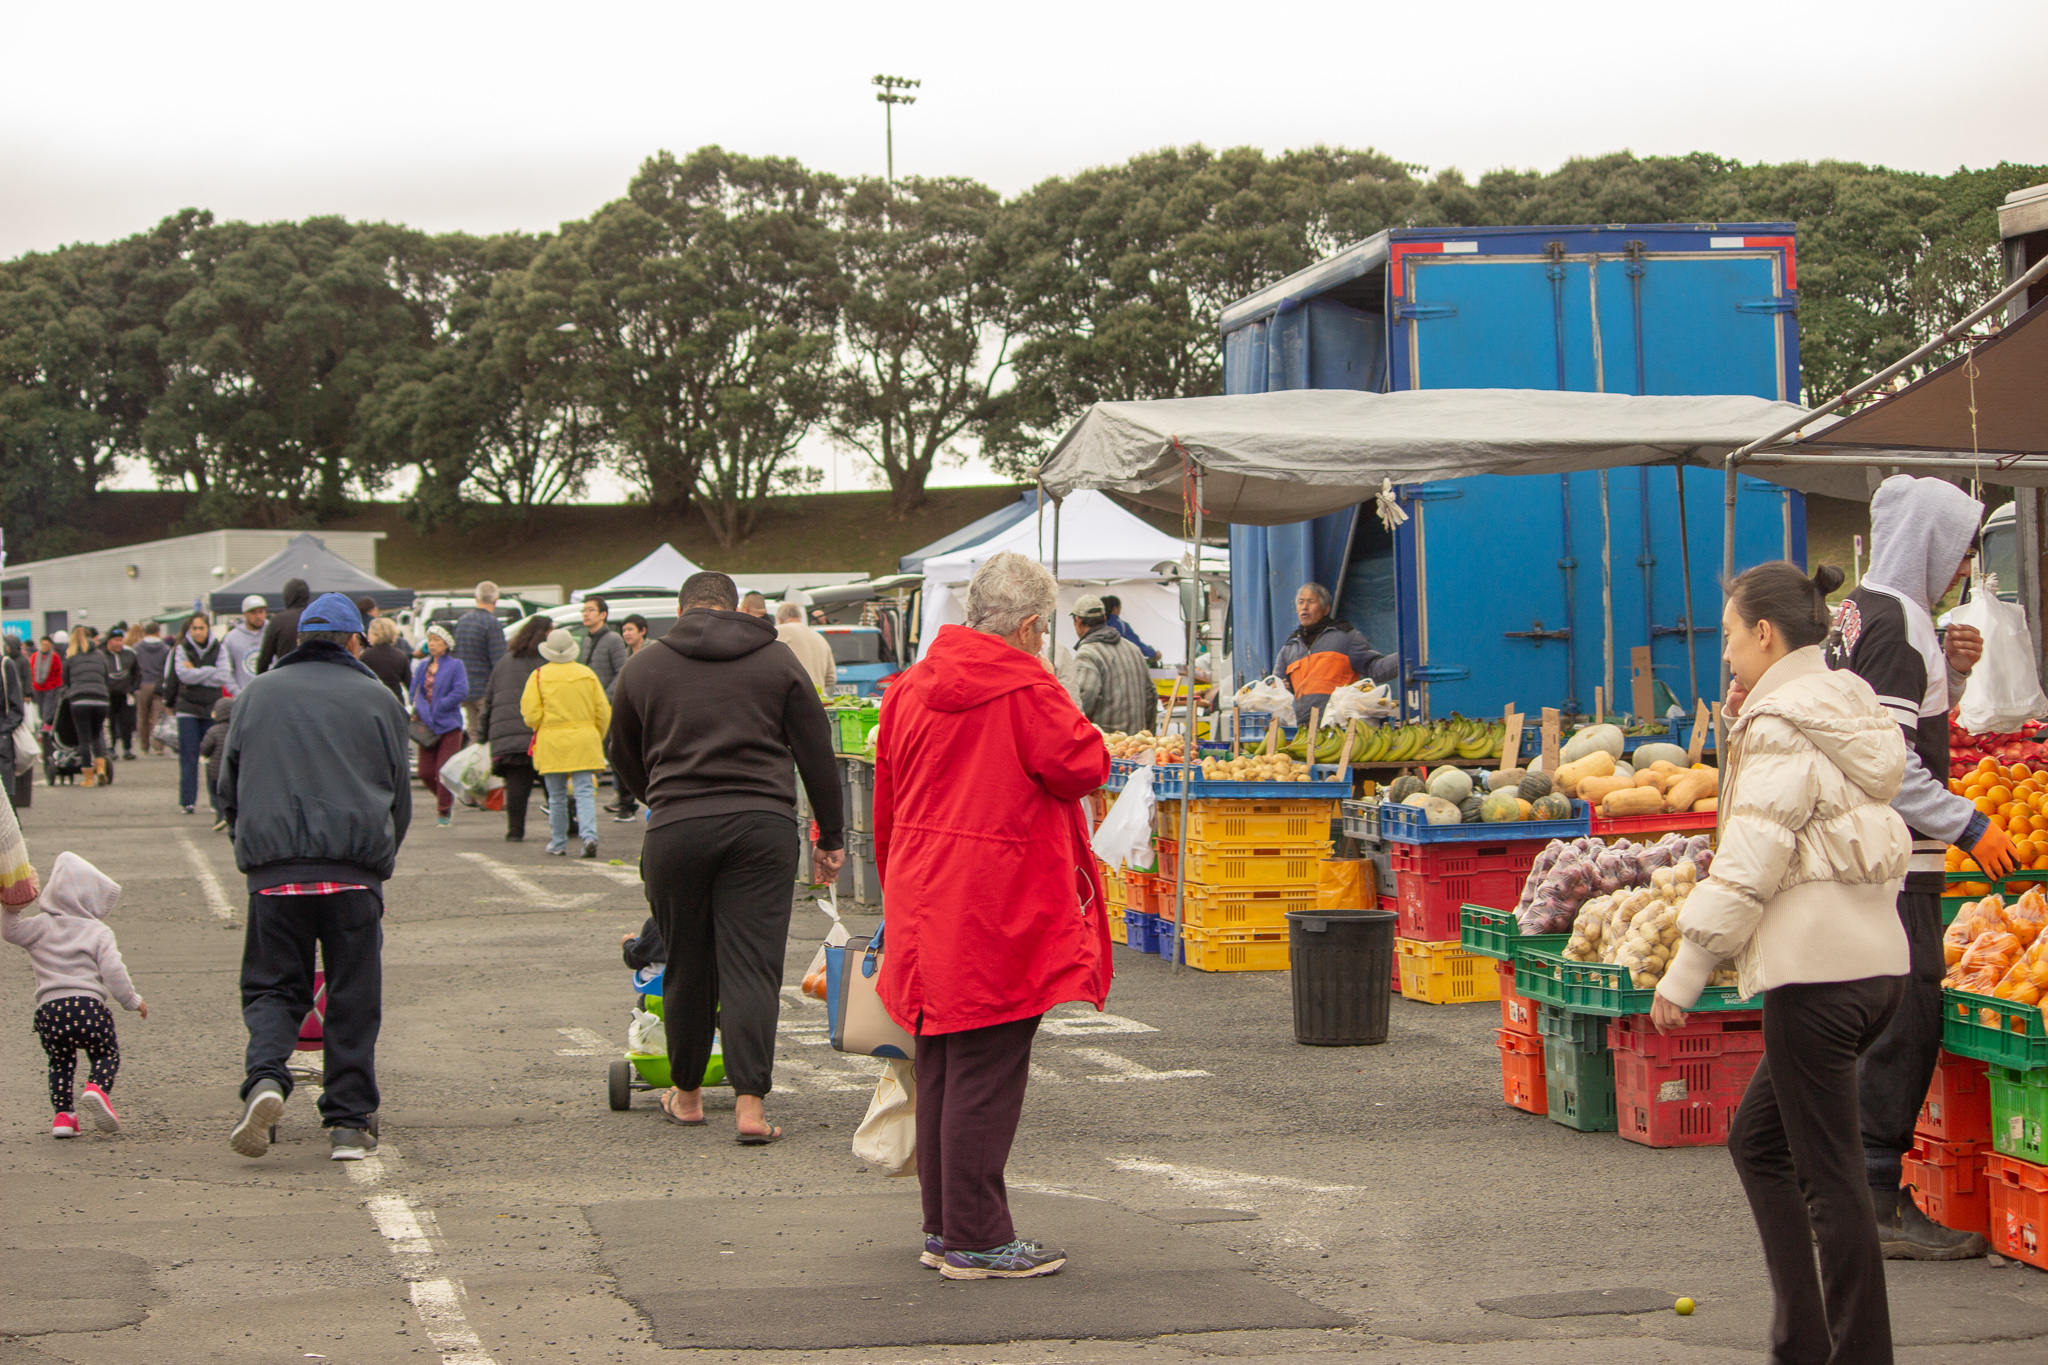 auckland markets on sunday filled with people and stallholders